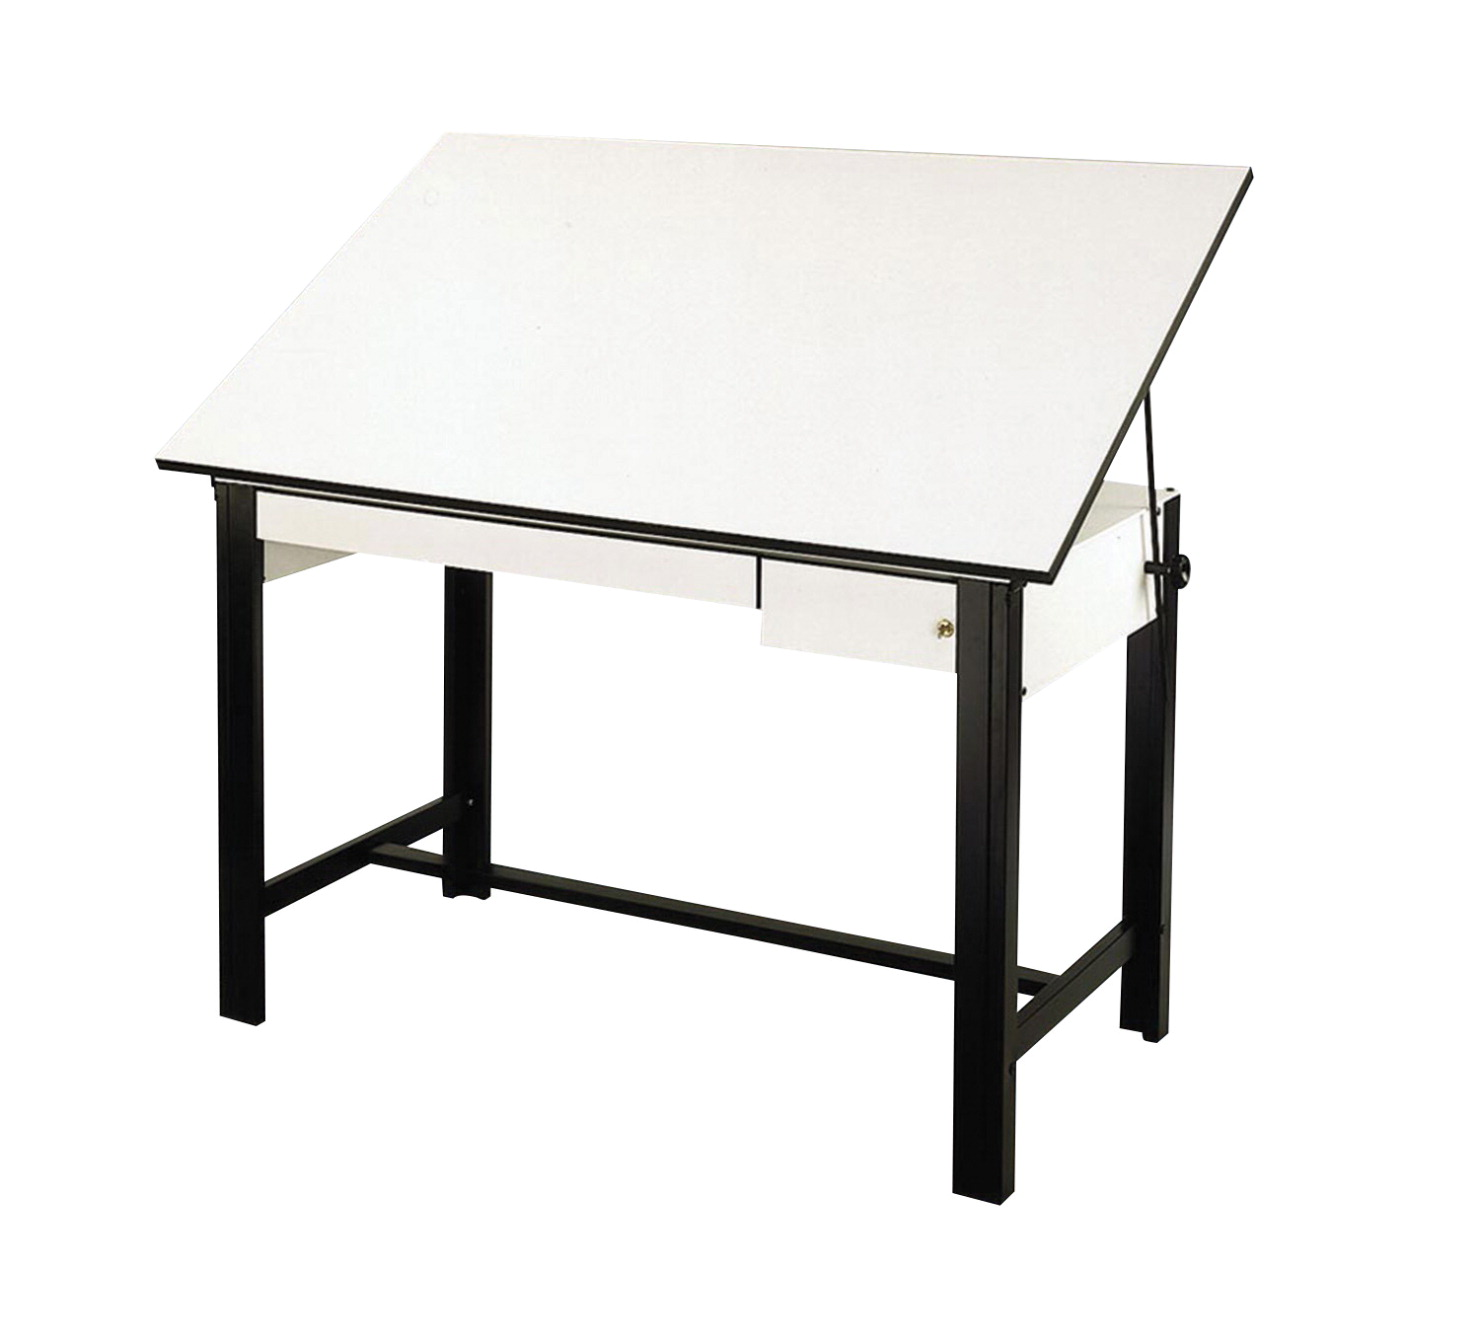 Alvin DesignMaster 4 Post Drawing Table, 60 x 37-1/2 x 37 Inches, Steel Base, Melamine Top